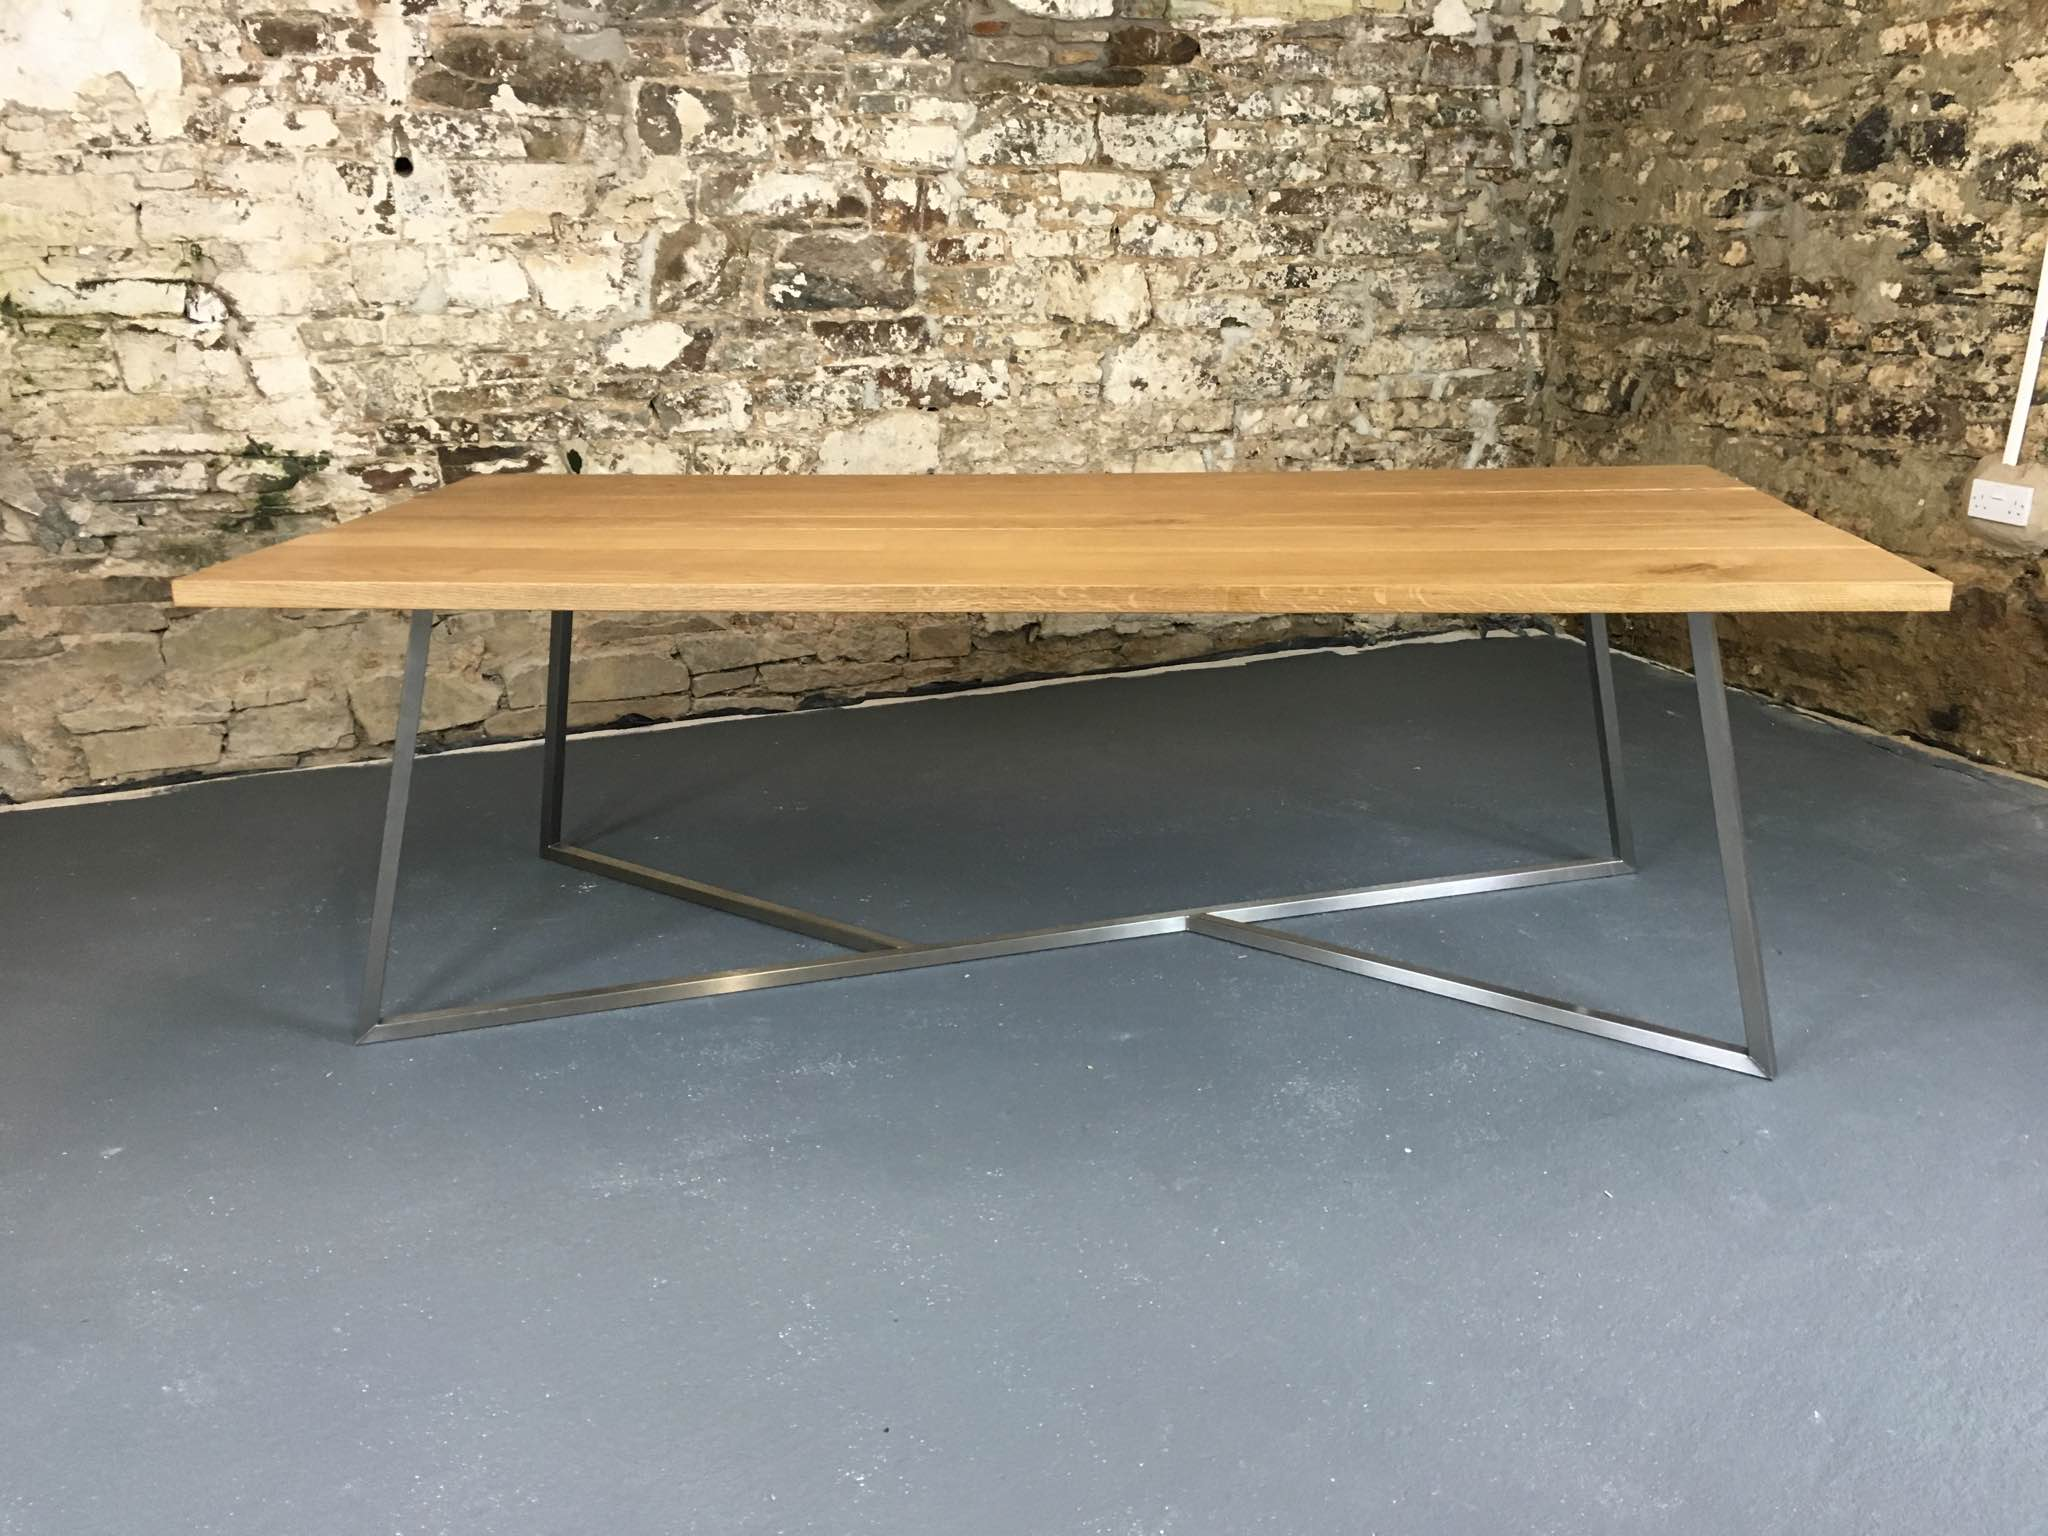 This table seats 8 people at 2400 x 1100mm